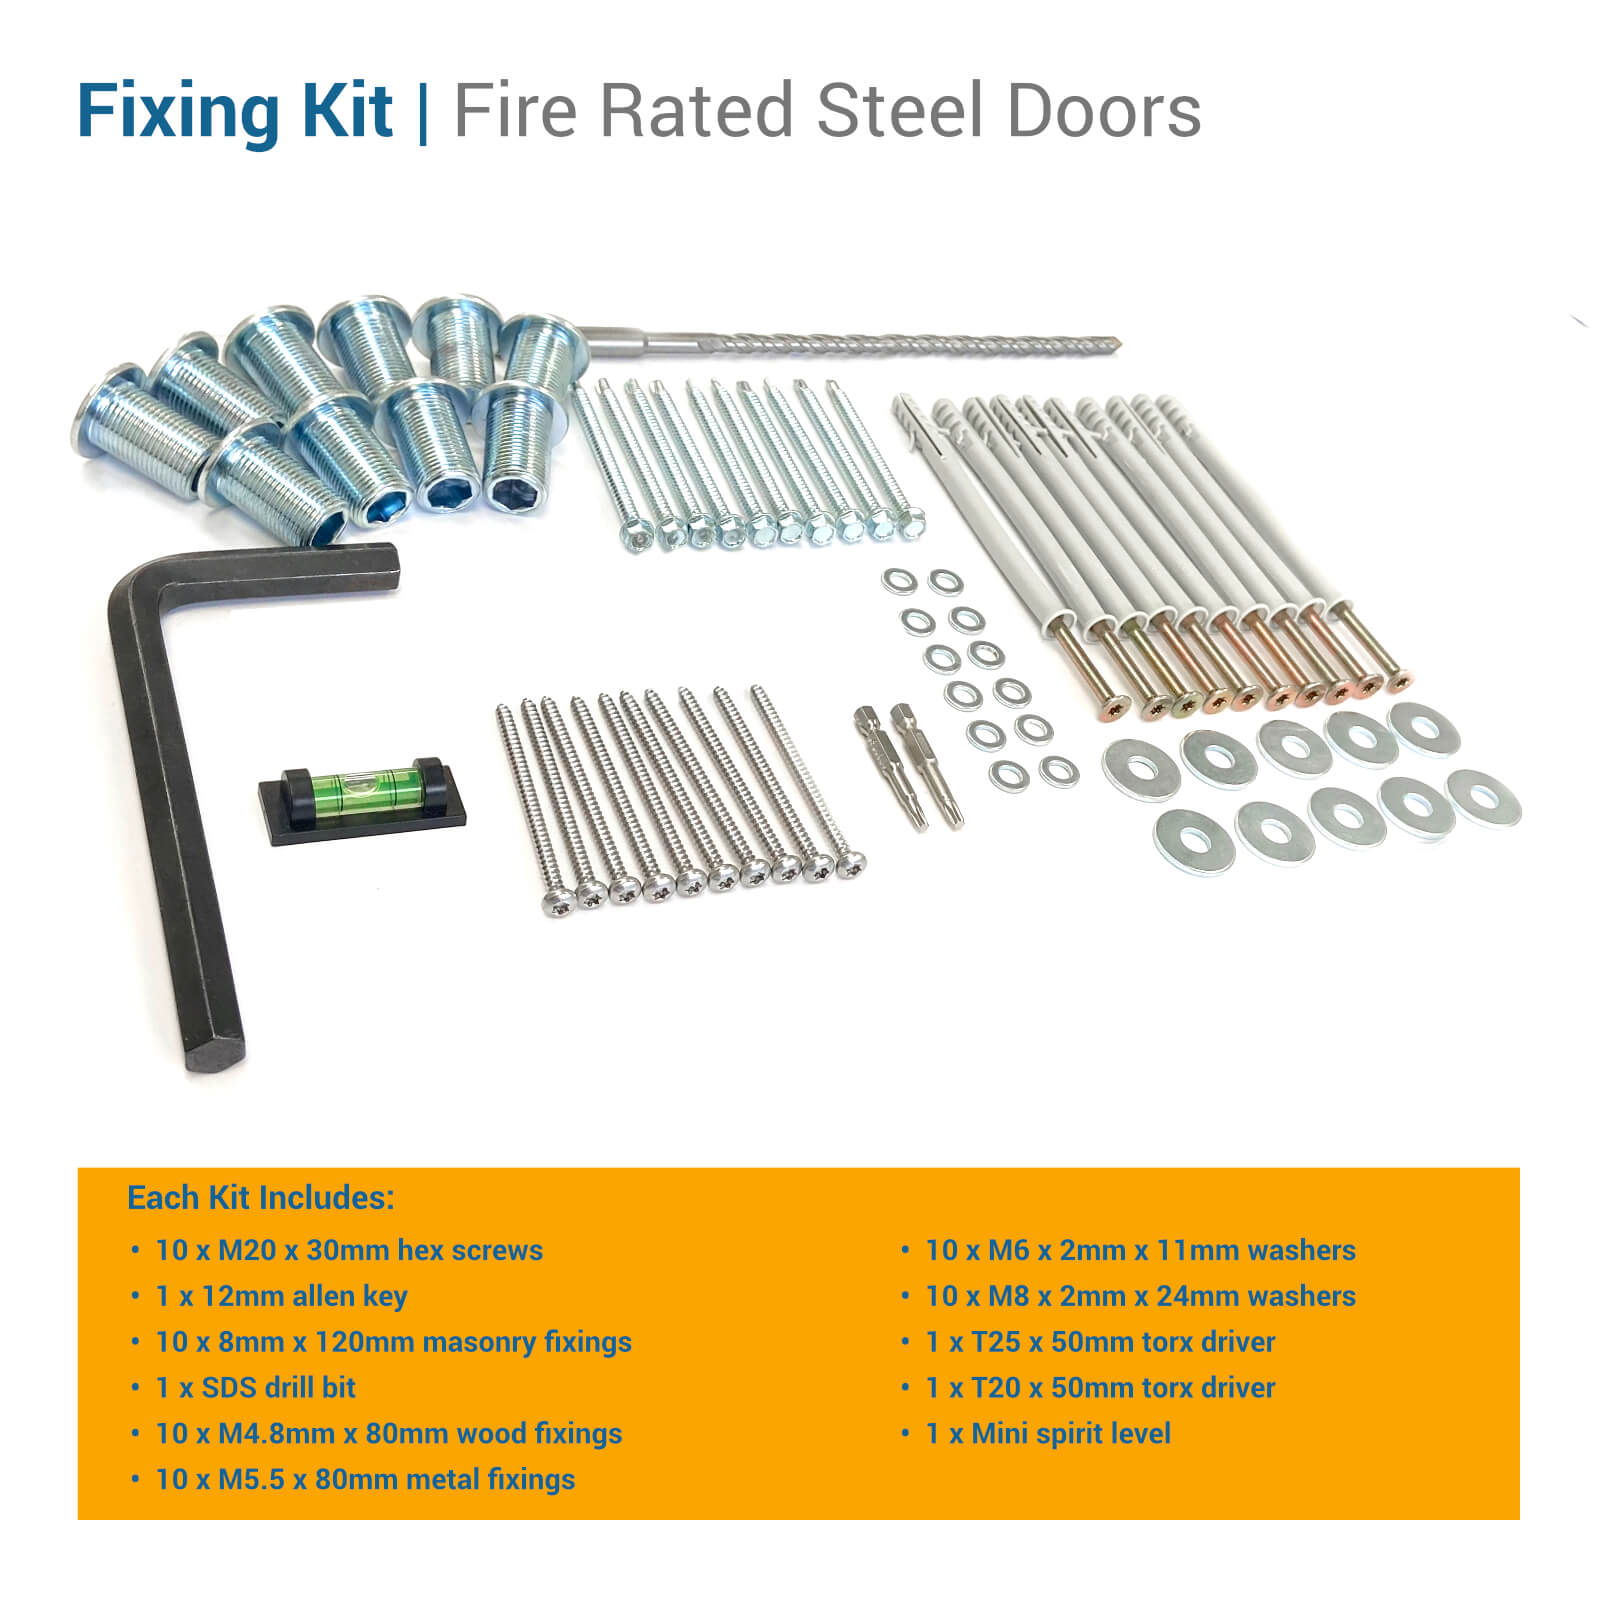 Fixing kit contents for fire rated steel doors